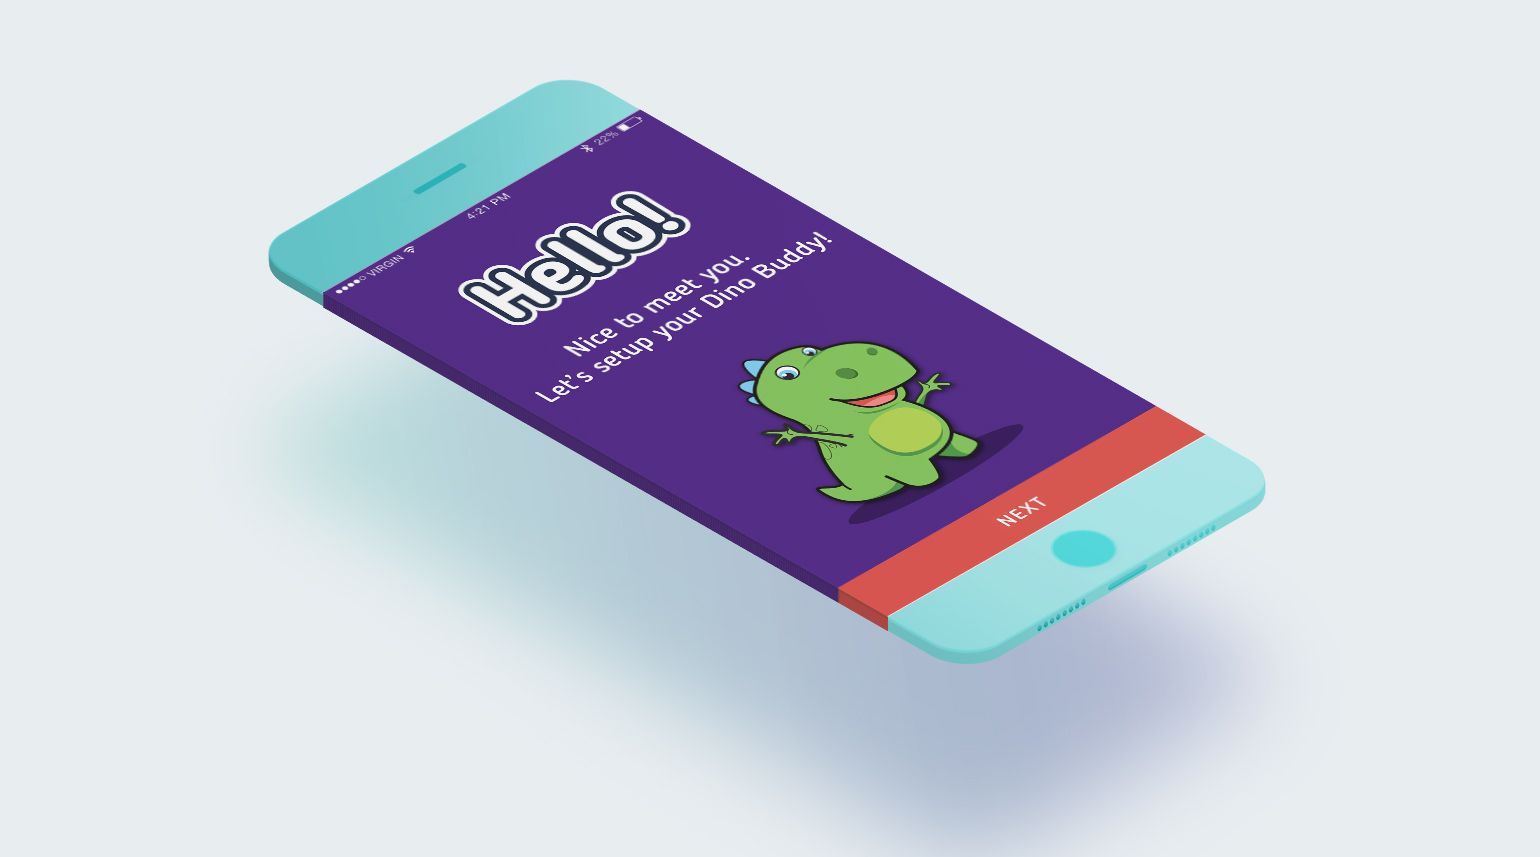 The CogniToys mobile app welcome screen design.